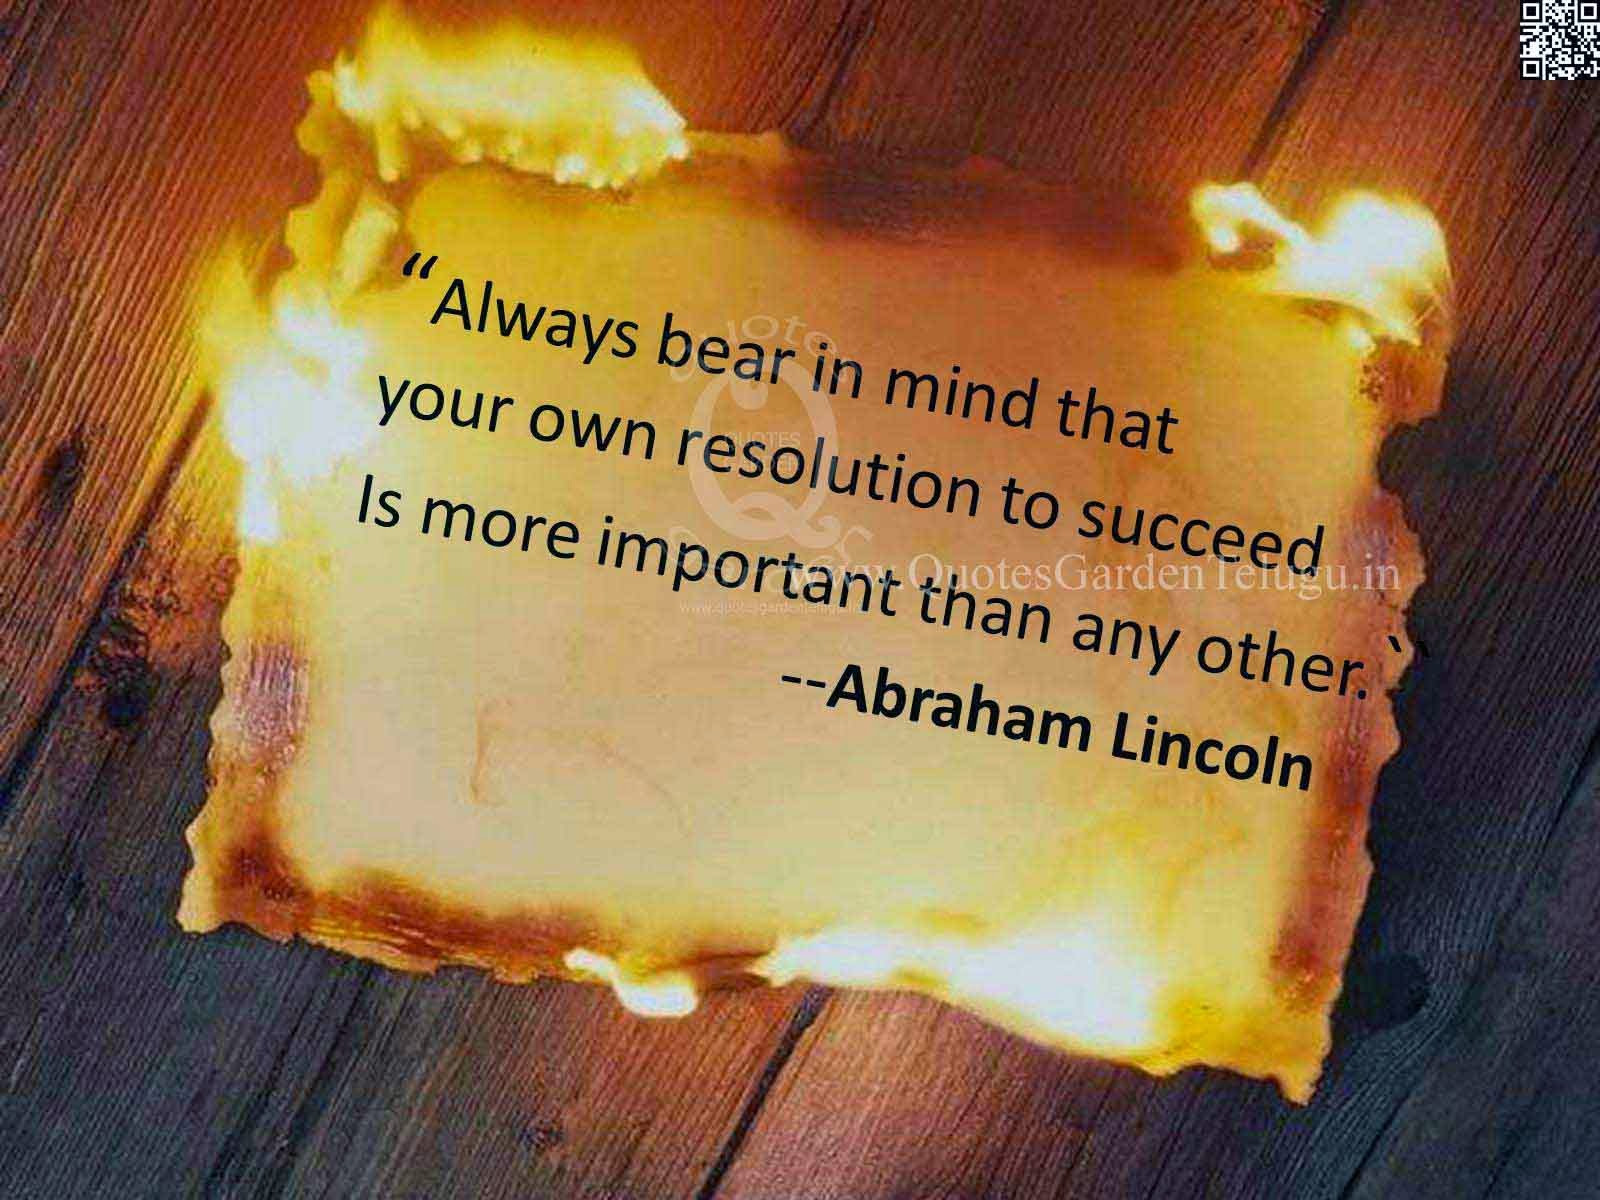 Inspirational Success Quotes from Abraham Lincoln